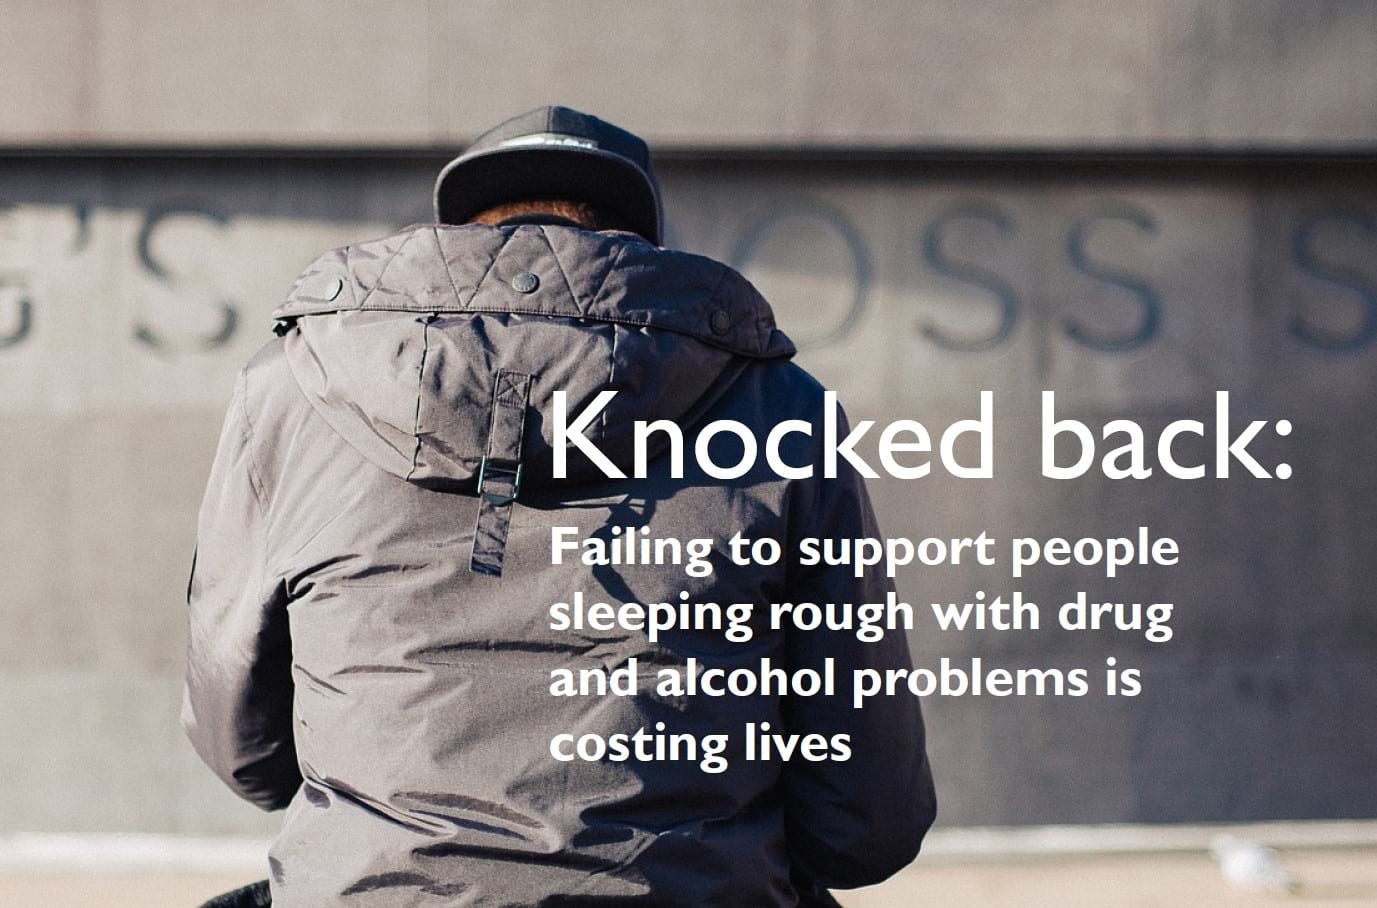 homeless people dying because they cannot access drug & alcohol treatment